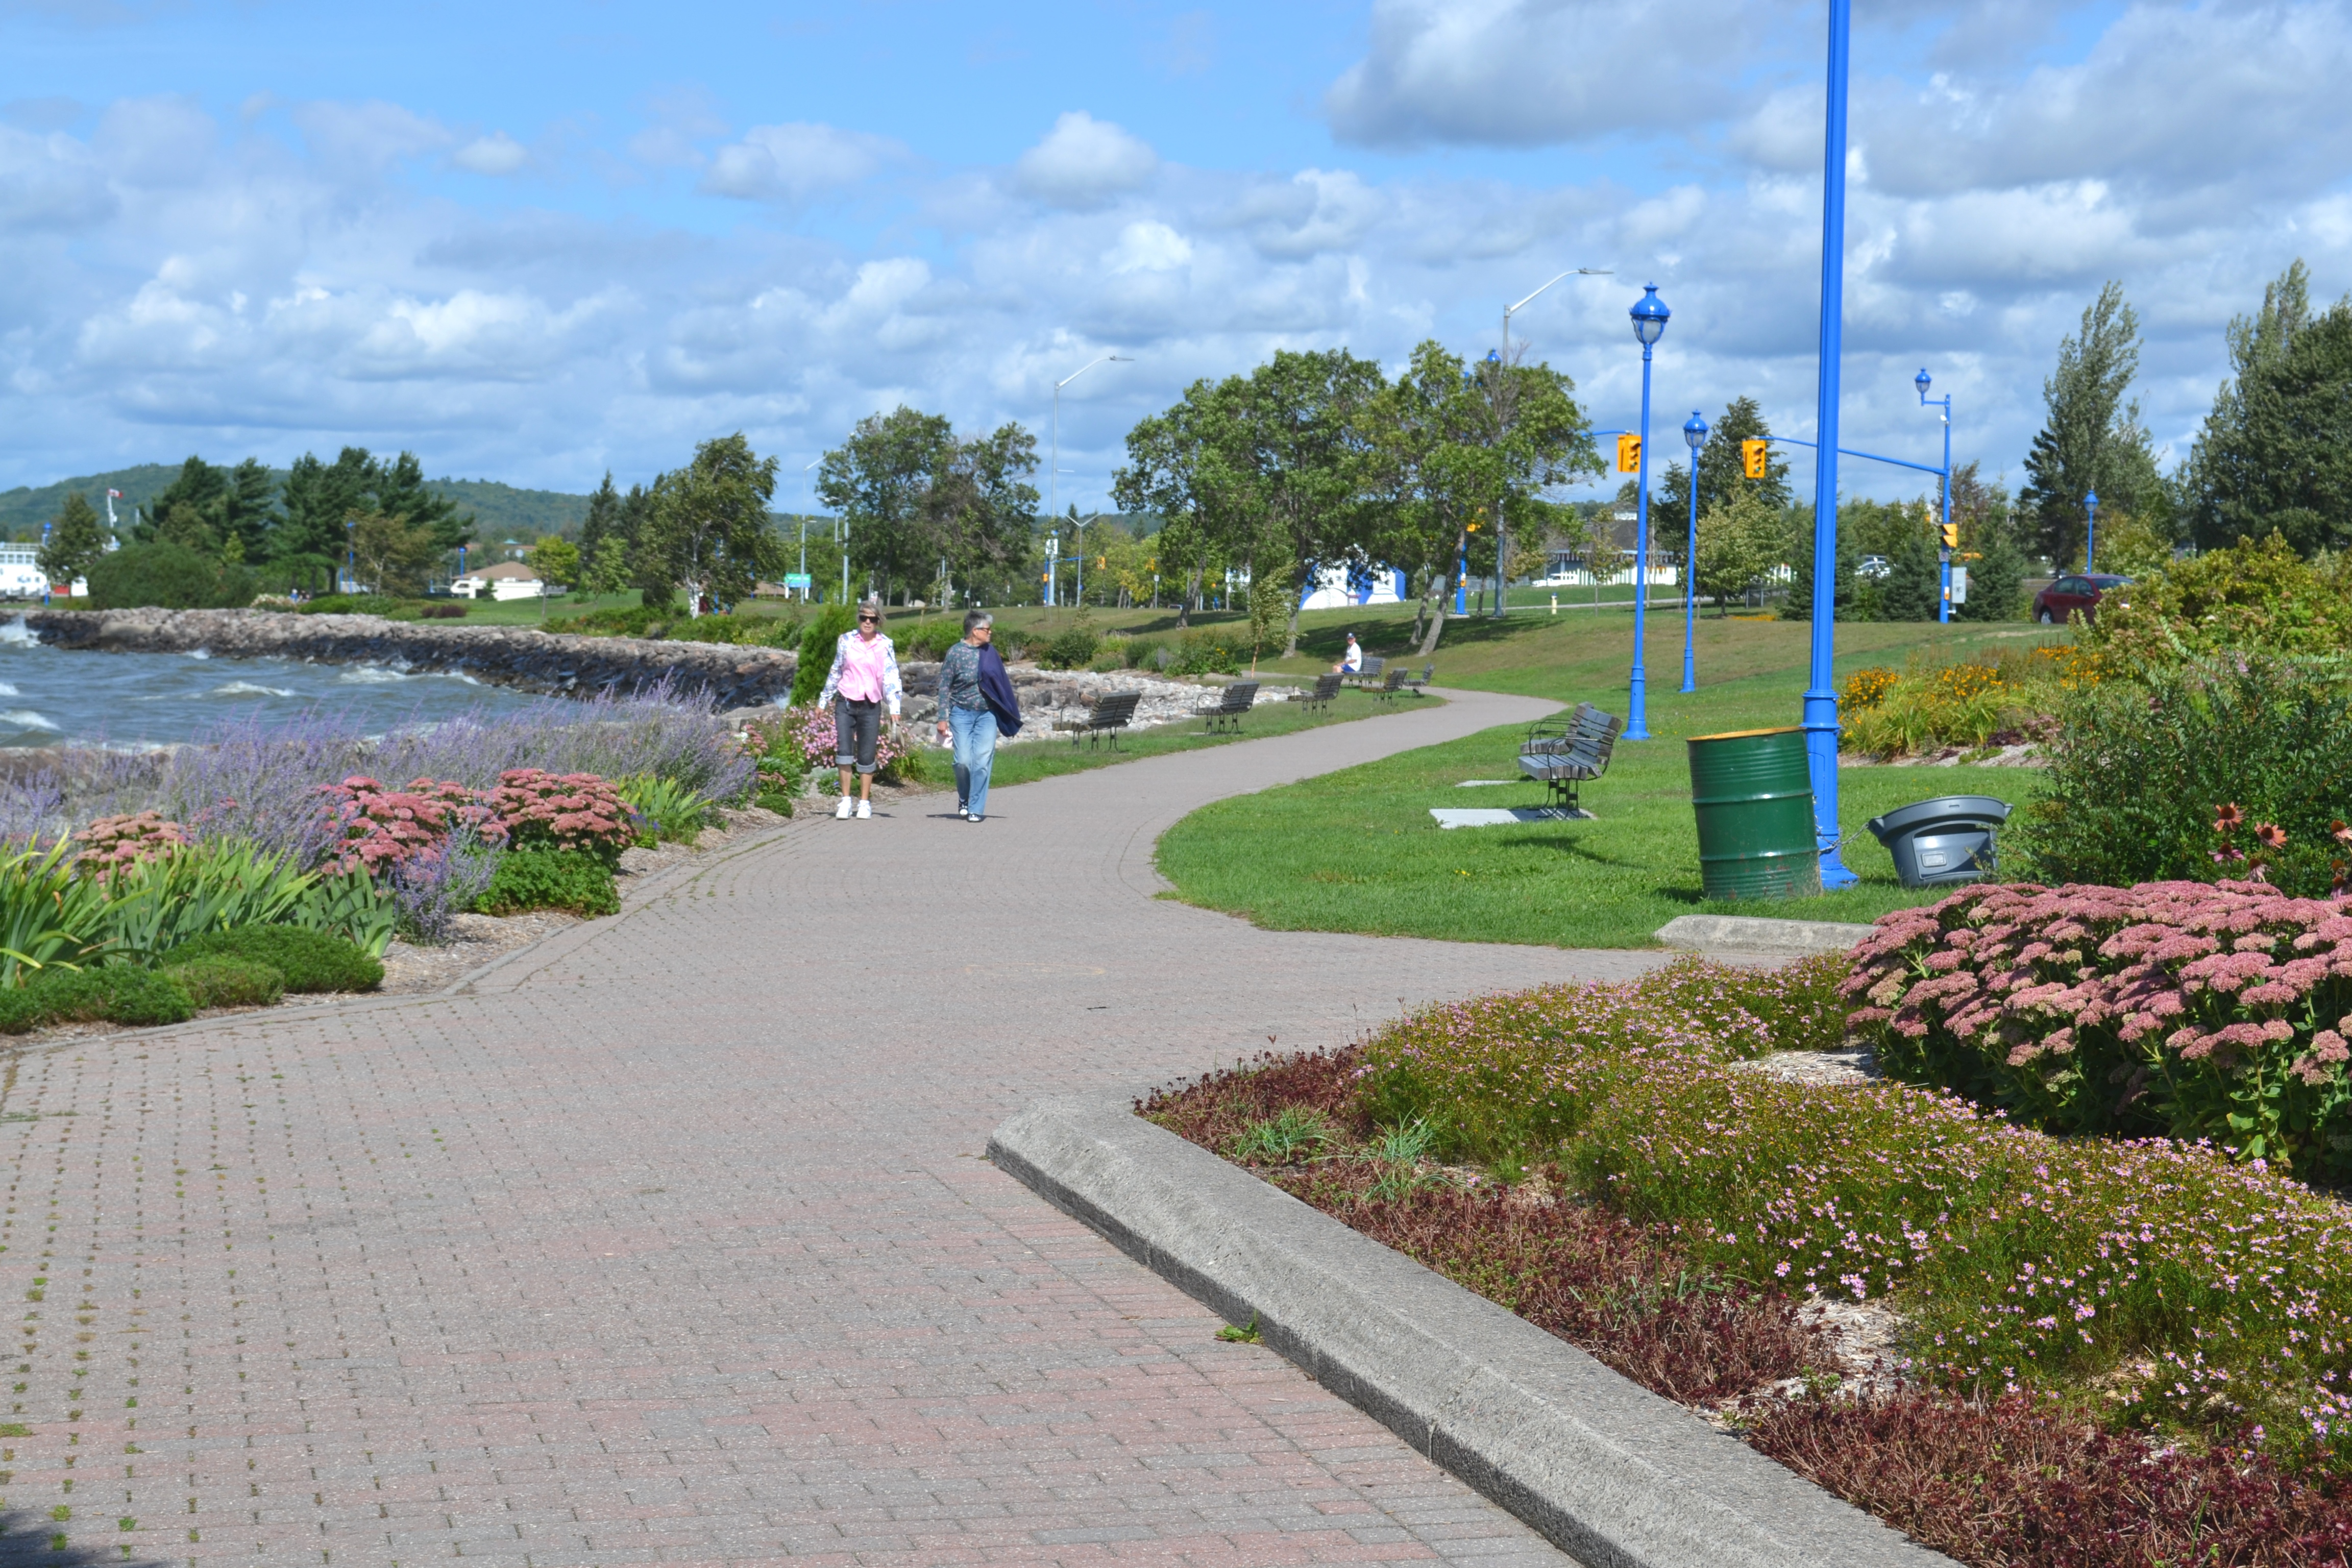 Car parking, pedestrian sidewalks and gardens run parallel to Kate Pace Way